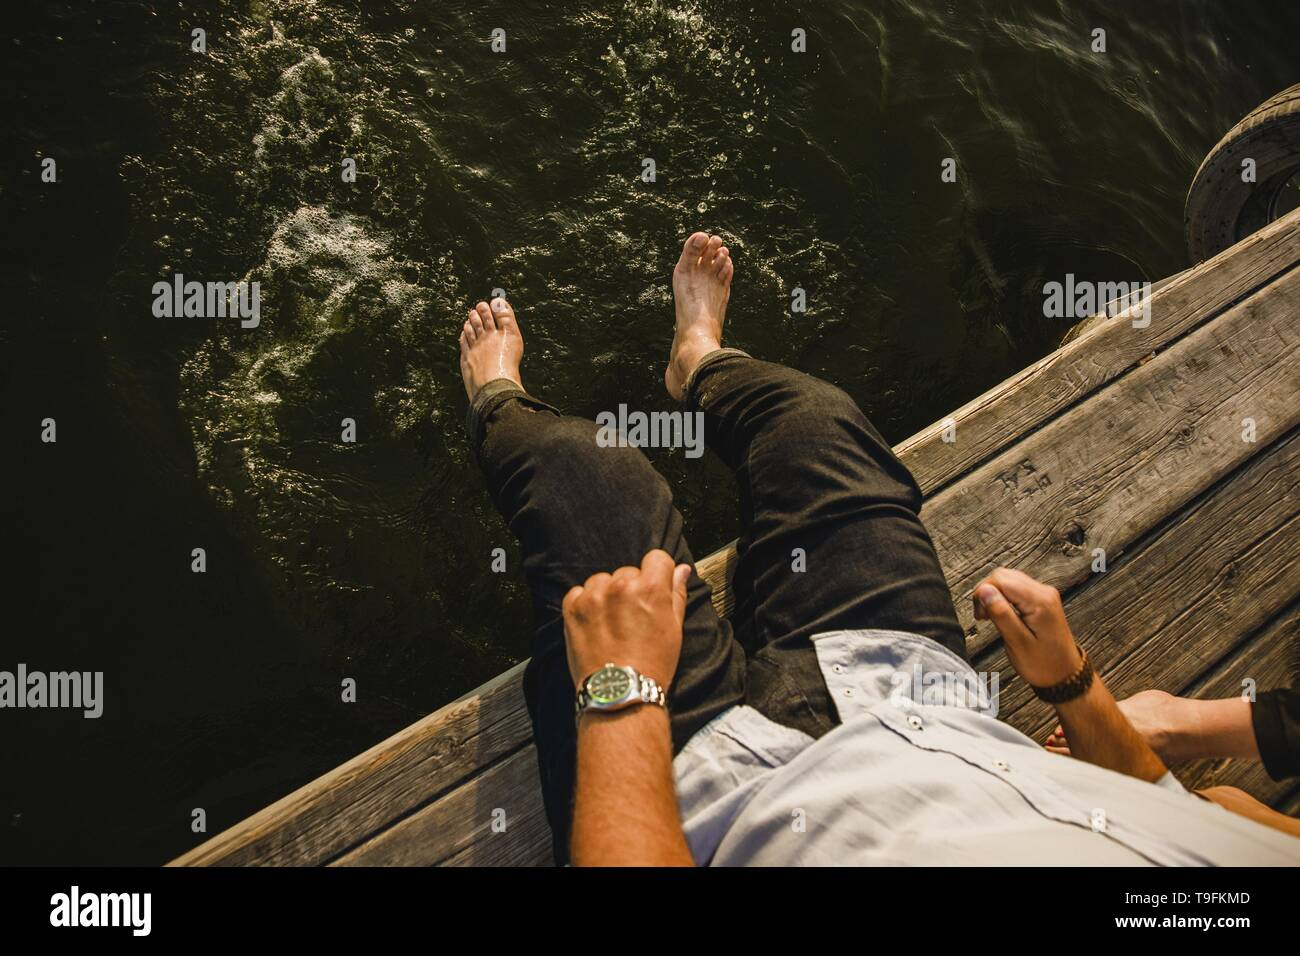 Male tourist refreshing his feet in the sea water, grain film added. - Stock Image